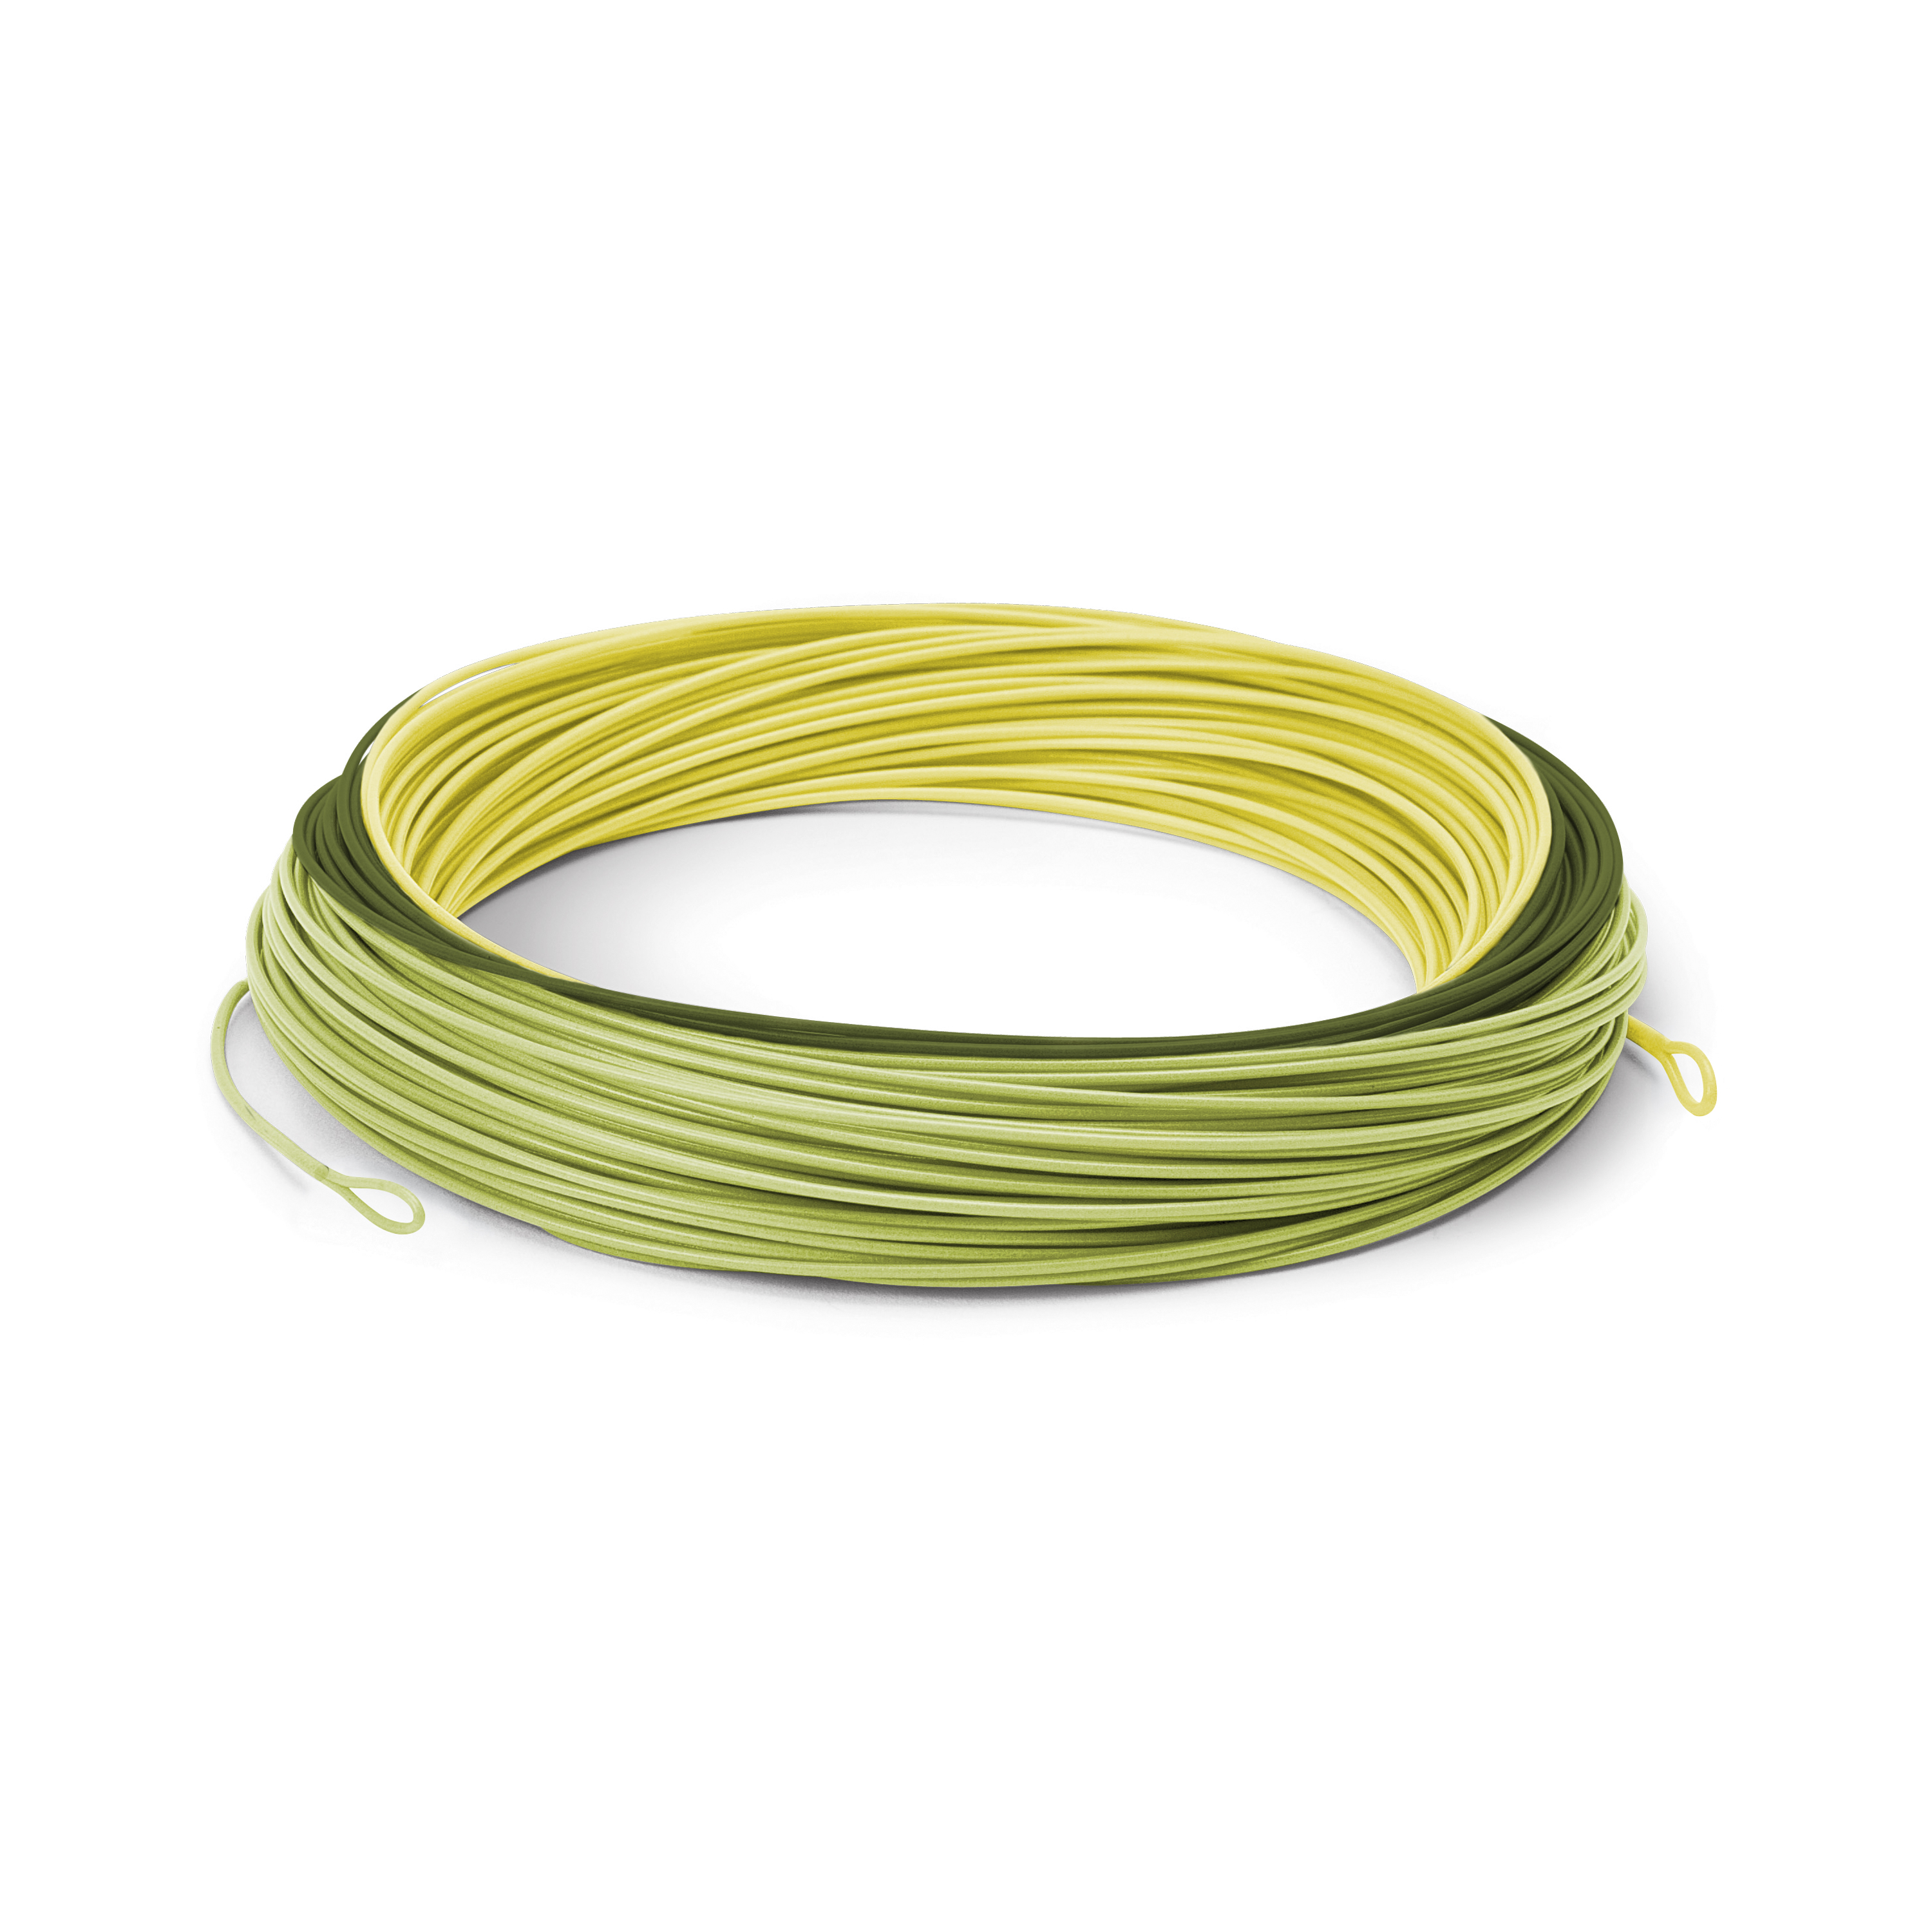 Fly Line Floating Cortland ULTRALIGHT Trout Series